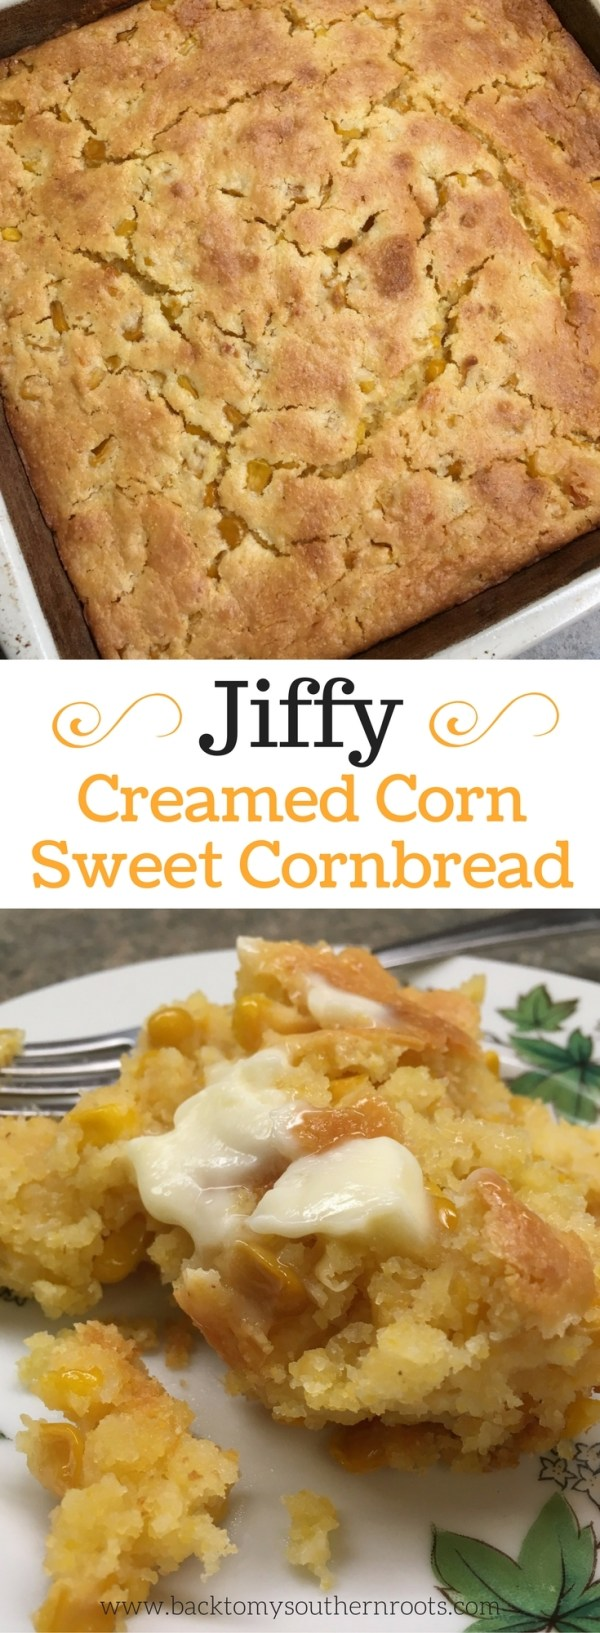 Creamed cornbread pictures in a casserole dish and on a plate with a fork